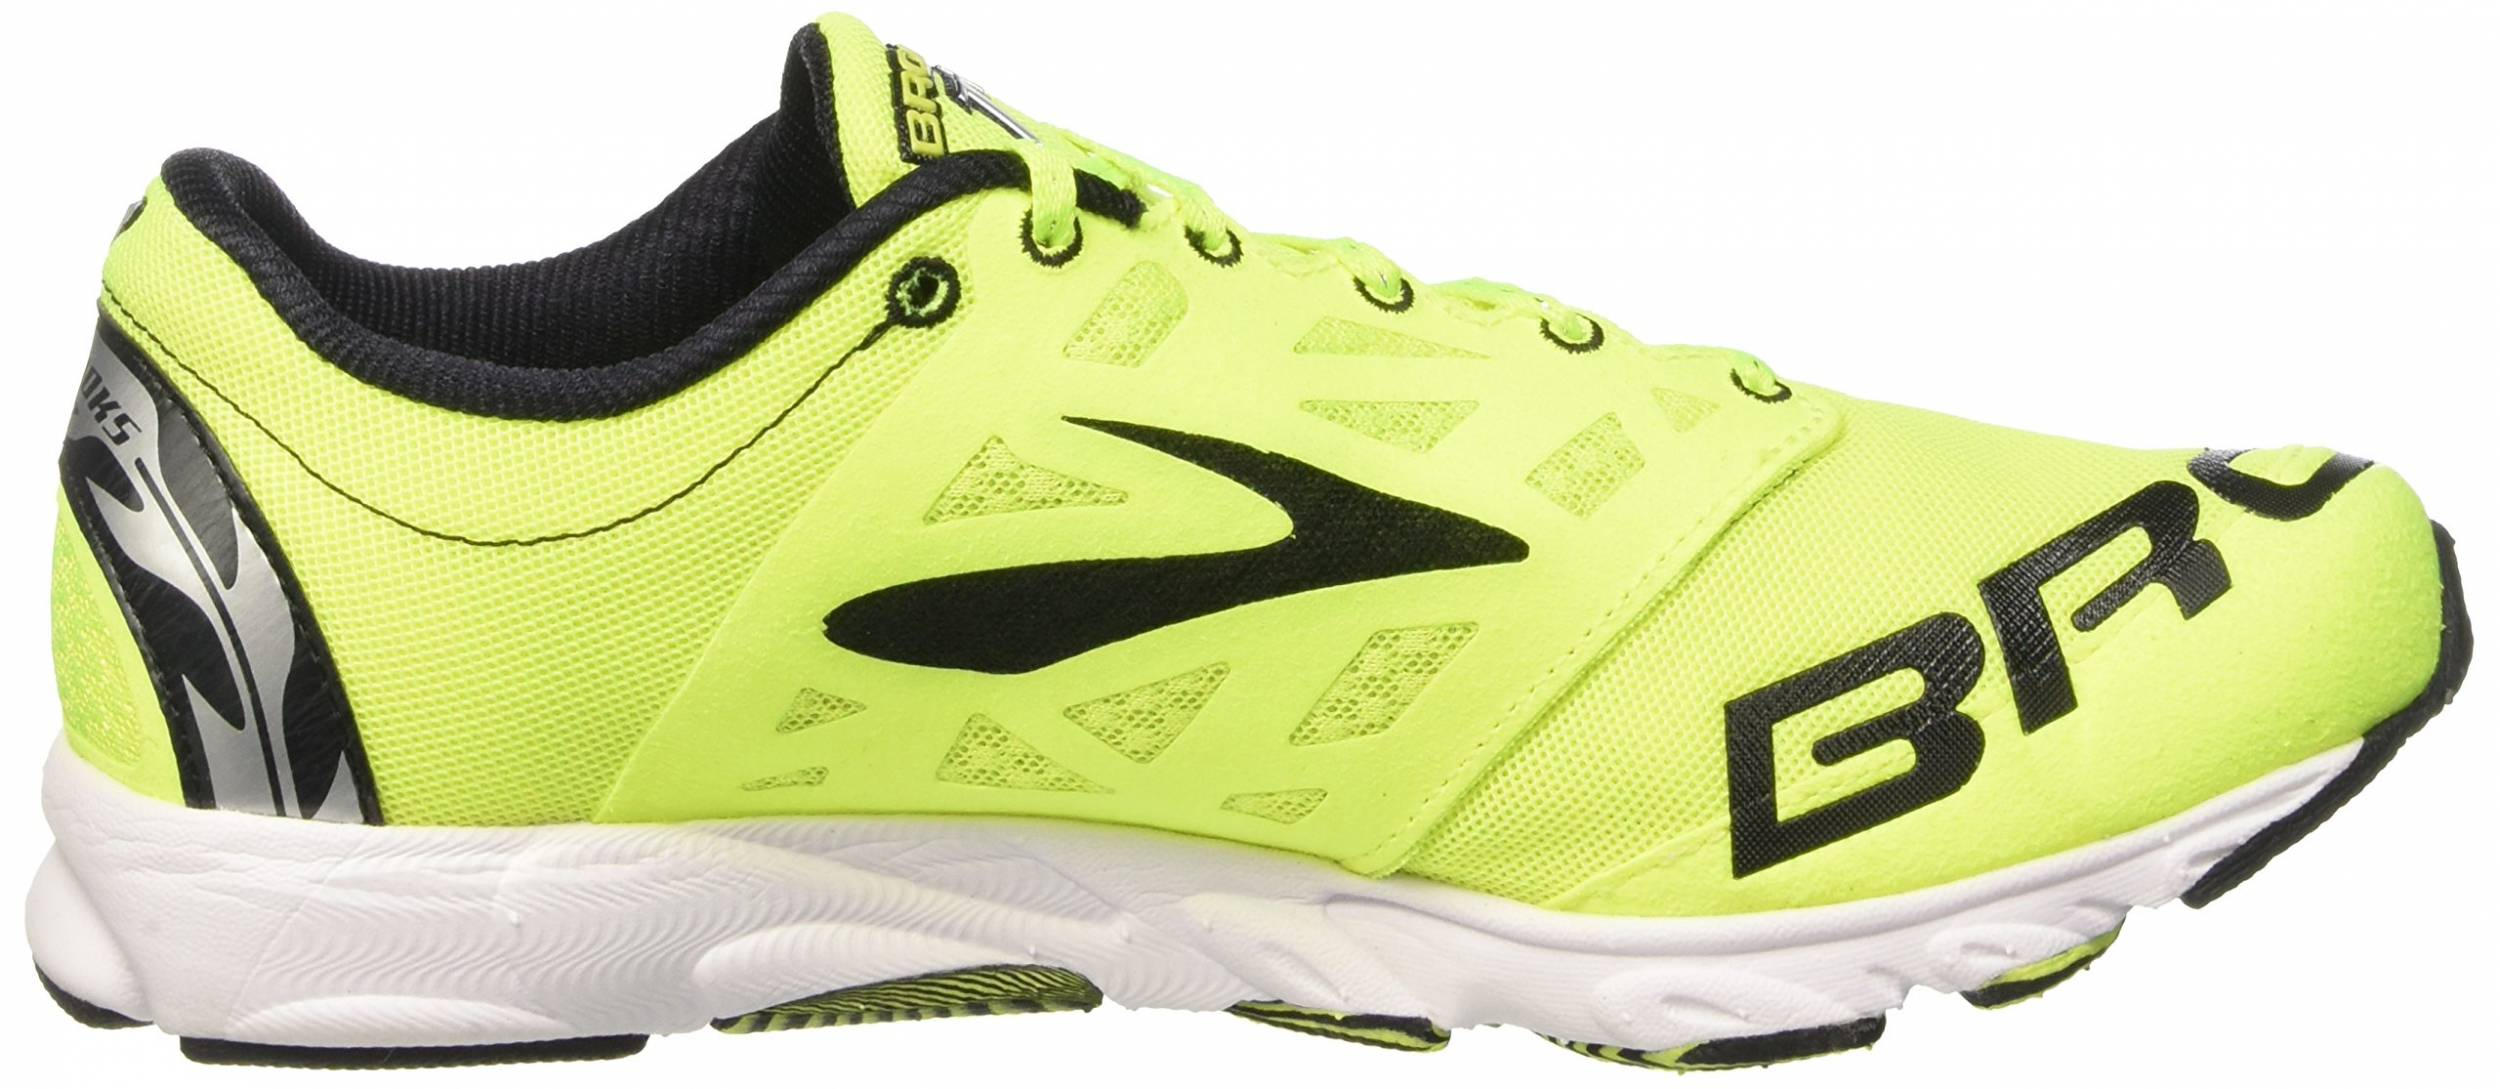 Only £50 + Review of Brooks T7 Racer